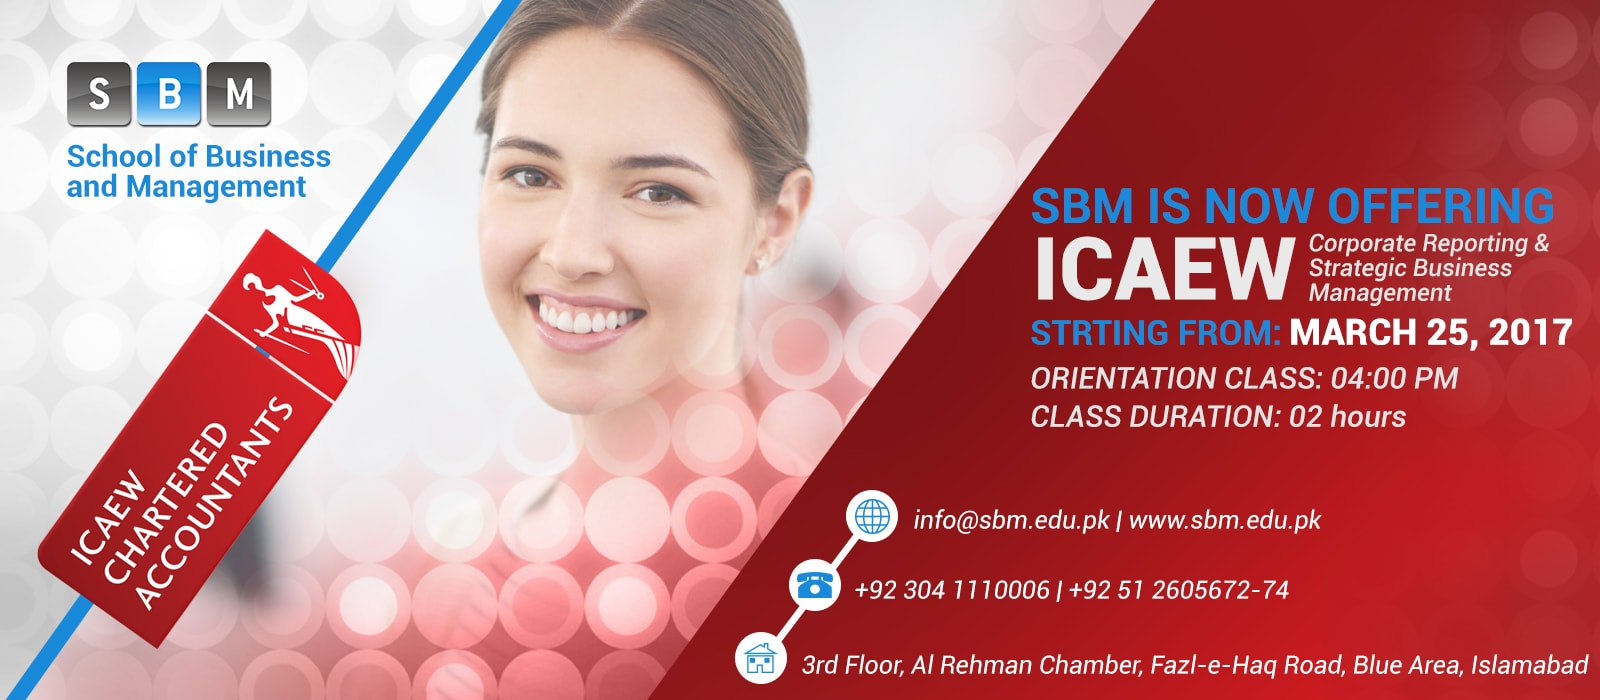 SBM is now offering ICAEW classes